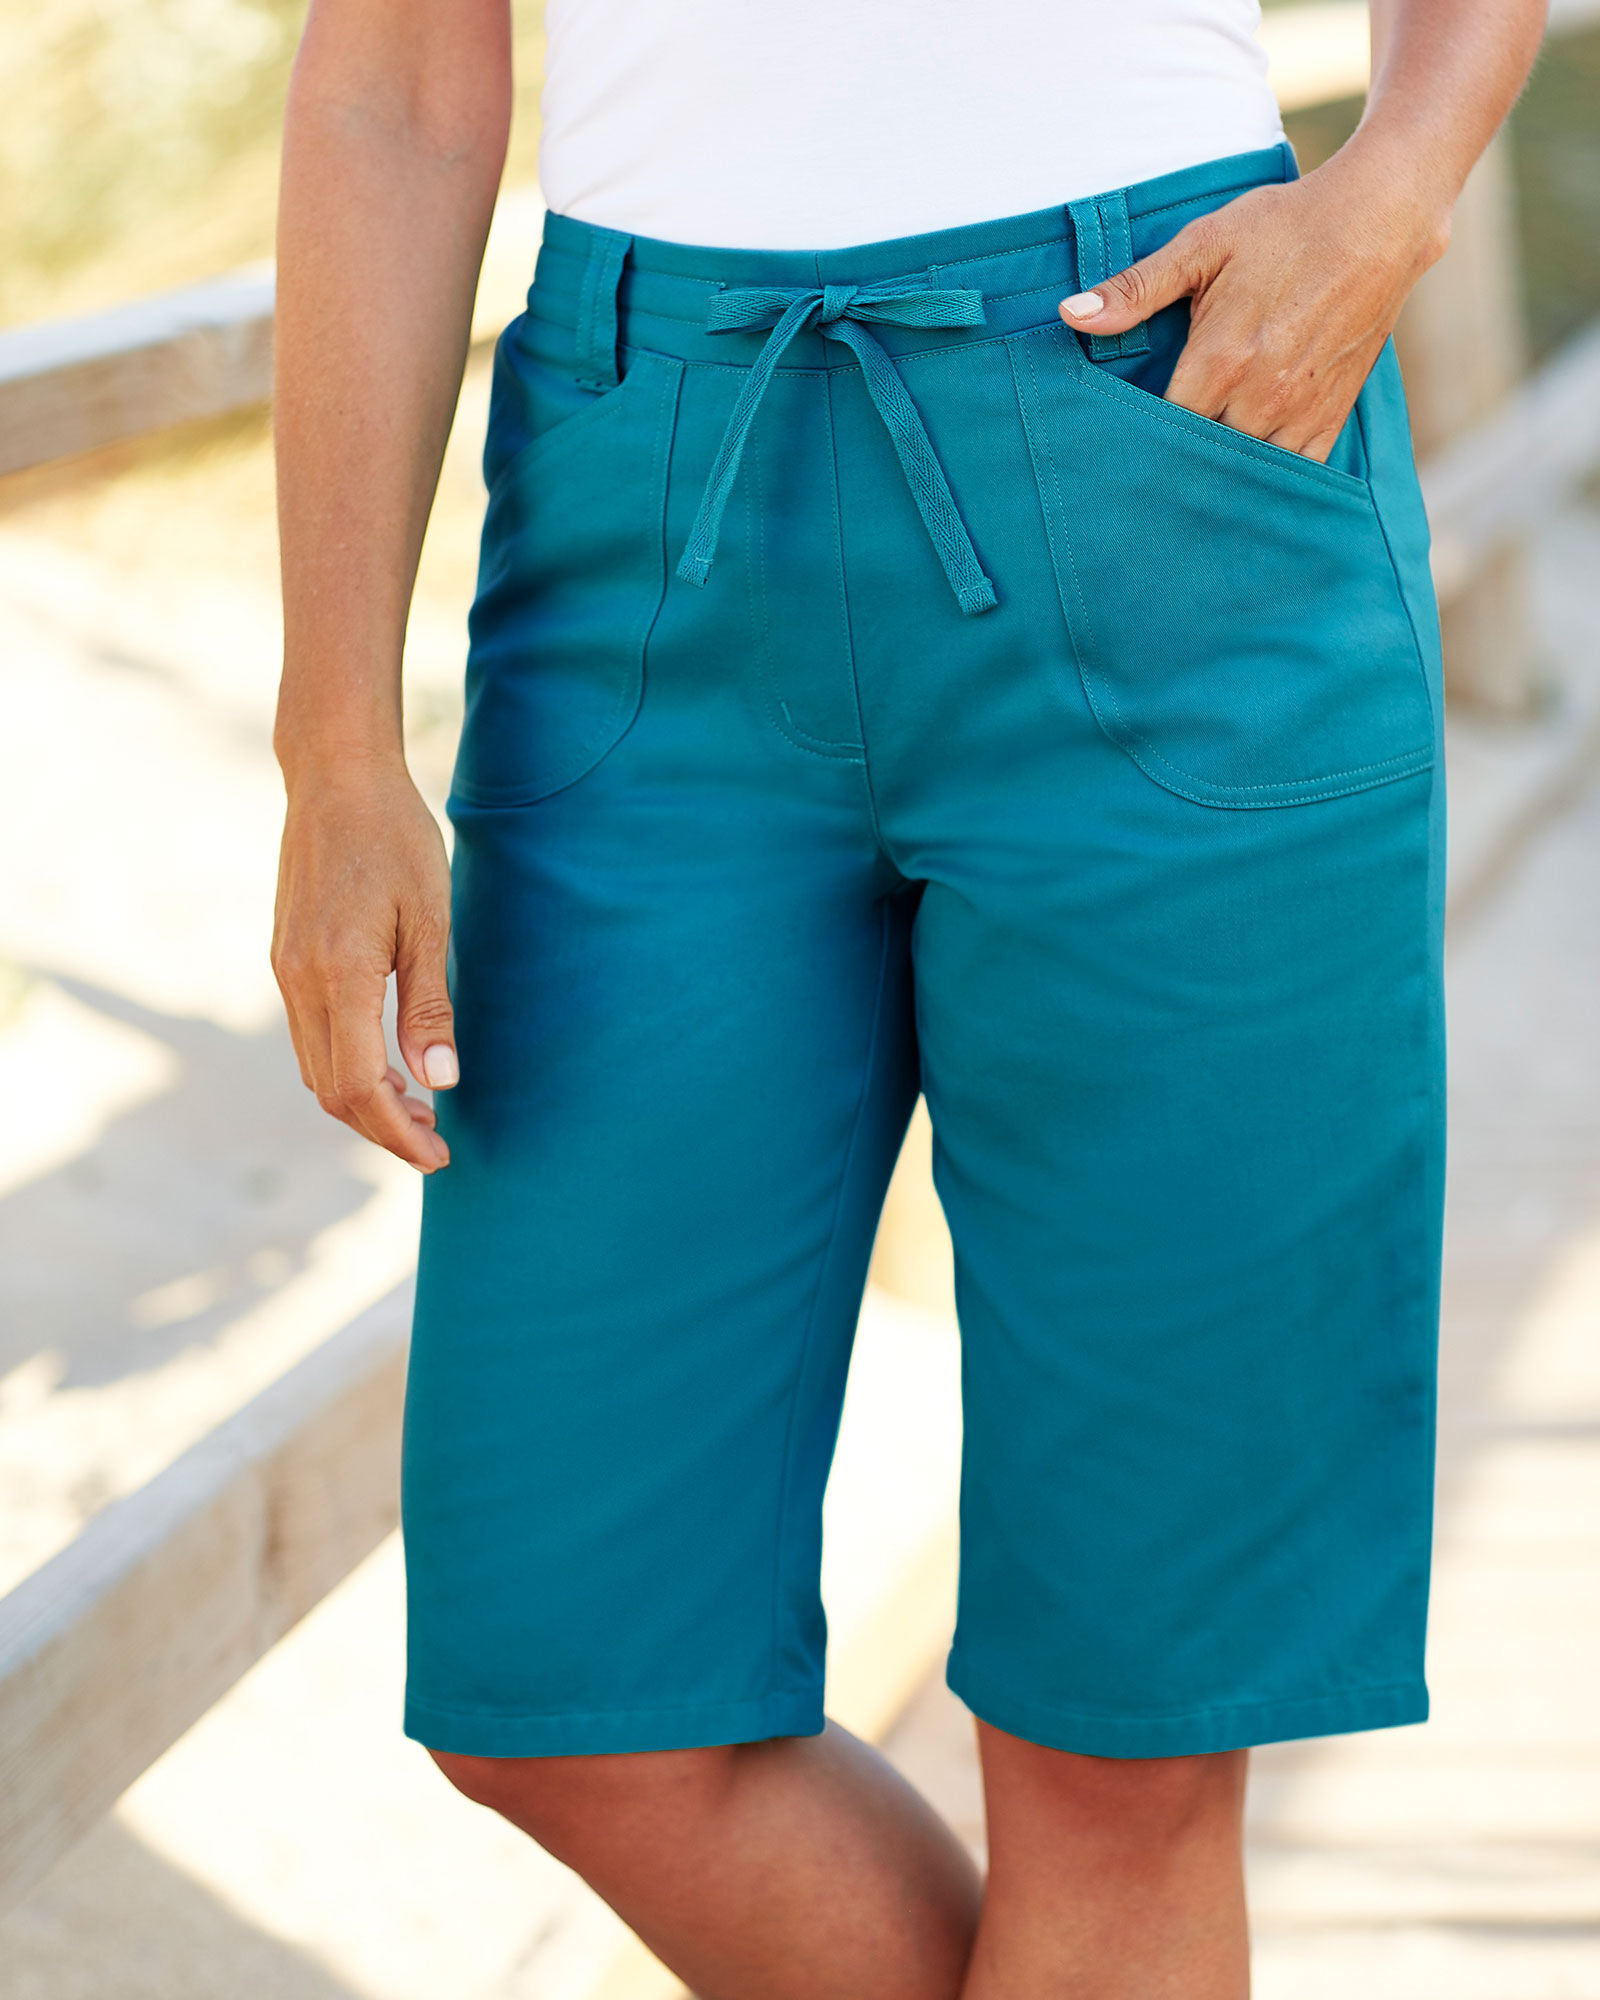 Cotton Traders Womens Ladies Casual Design Wrinkle Free Pull On Shorts 34cm